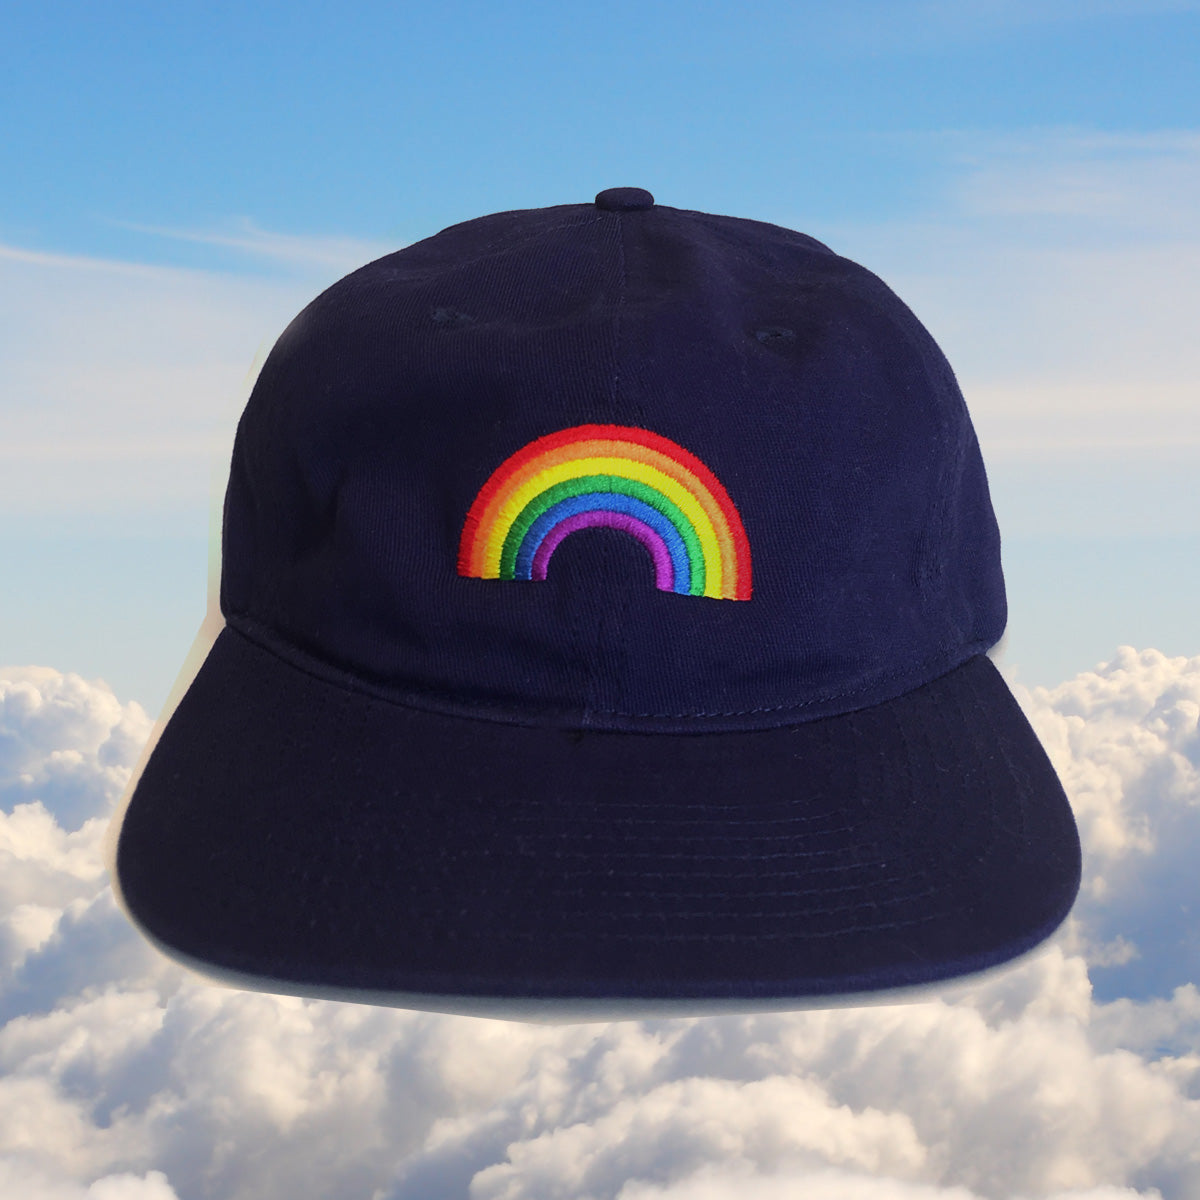 Official 2017 Pitchfork Music Festival Hats